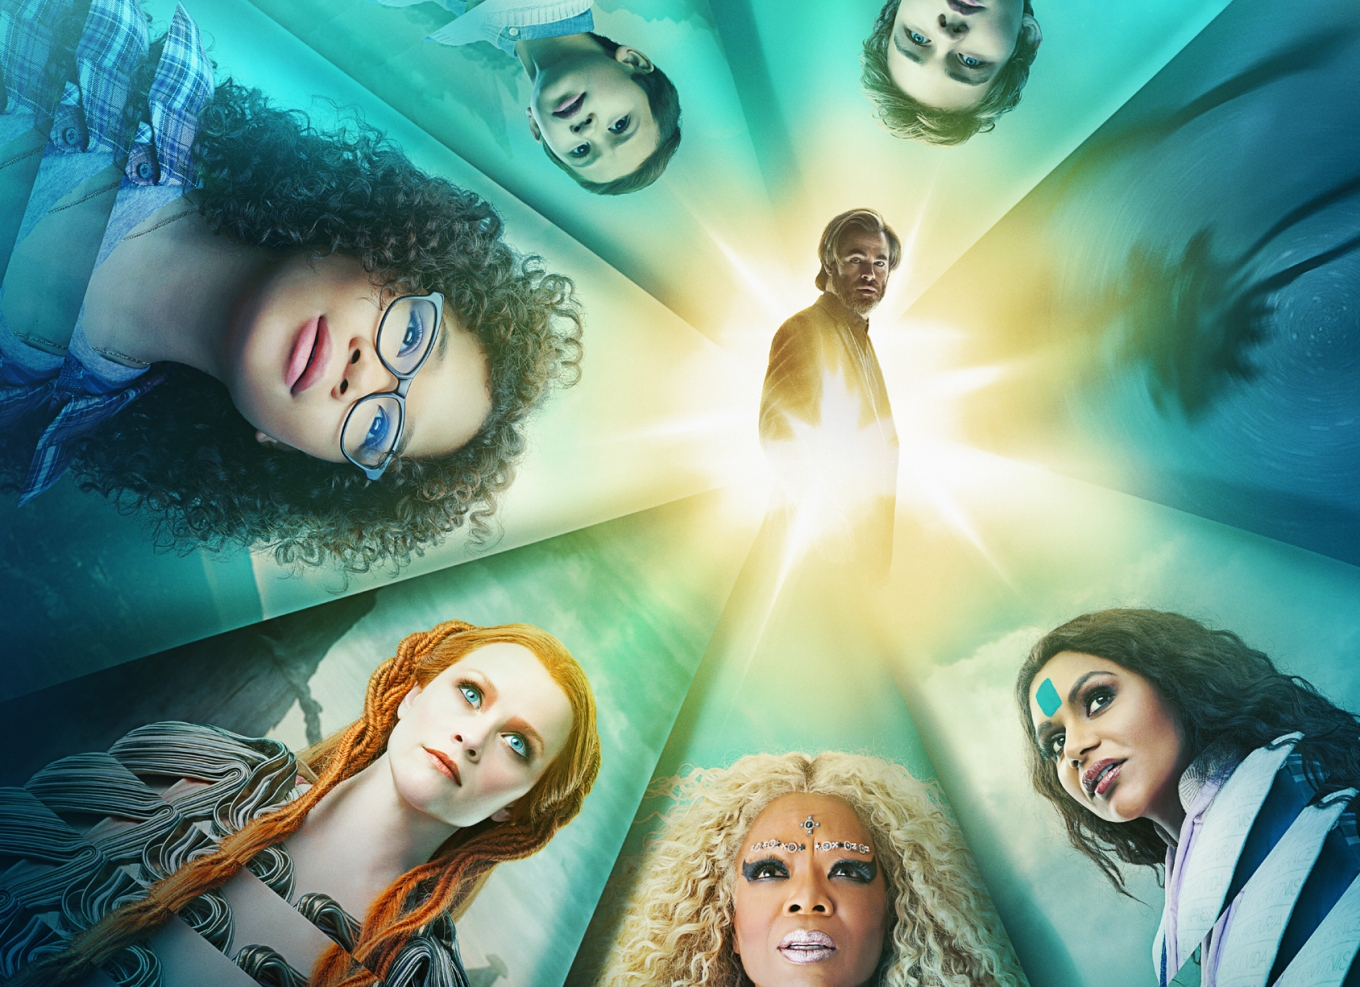 REVIEW: 'A Wrinkle In Time' booted God to the curb ... and the plot, too